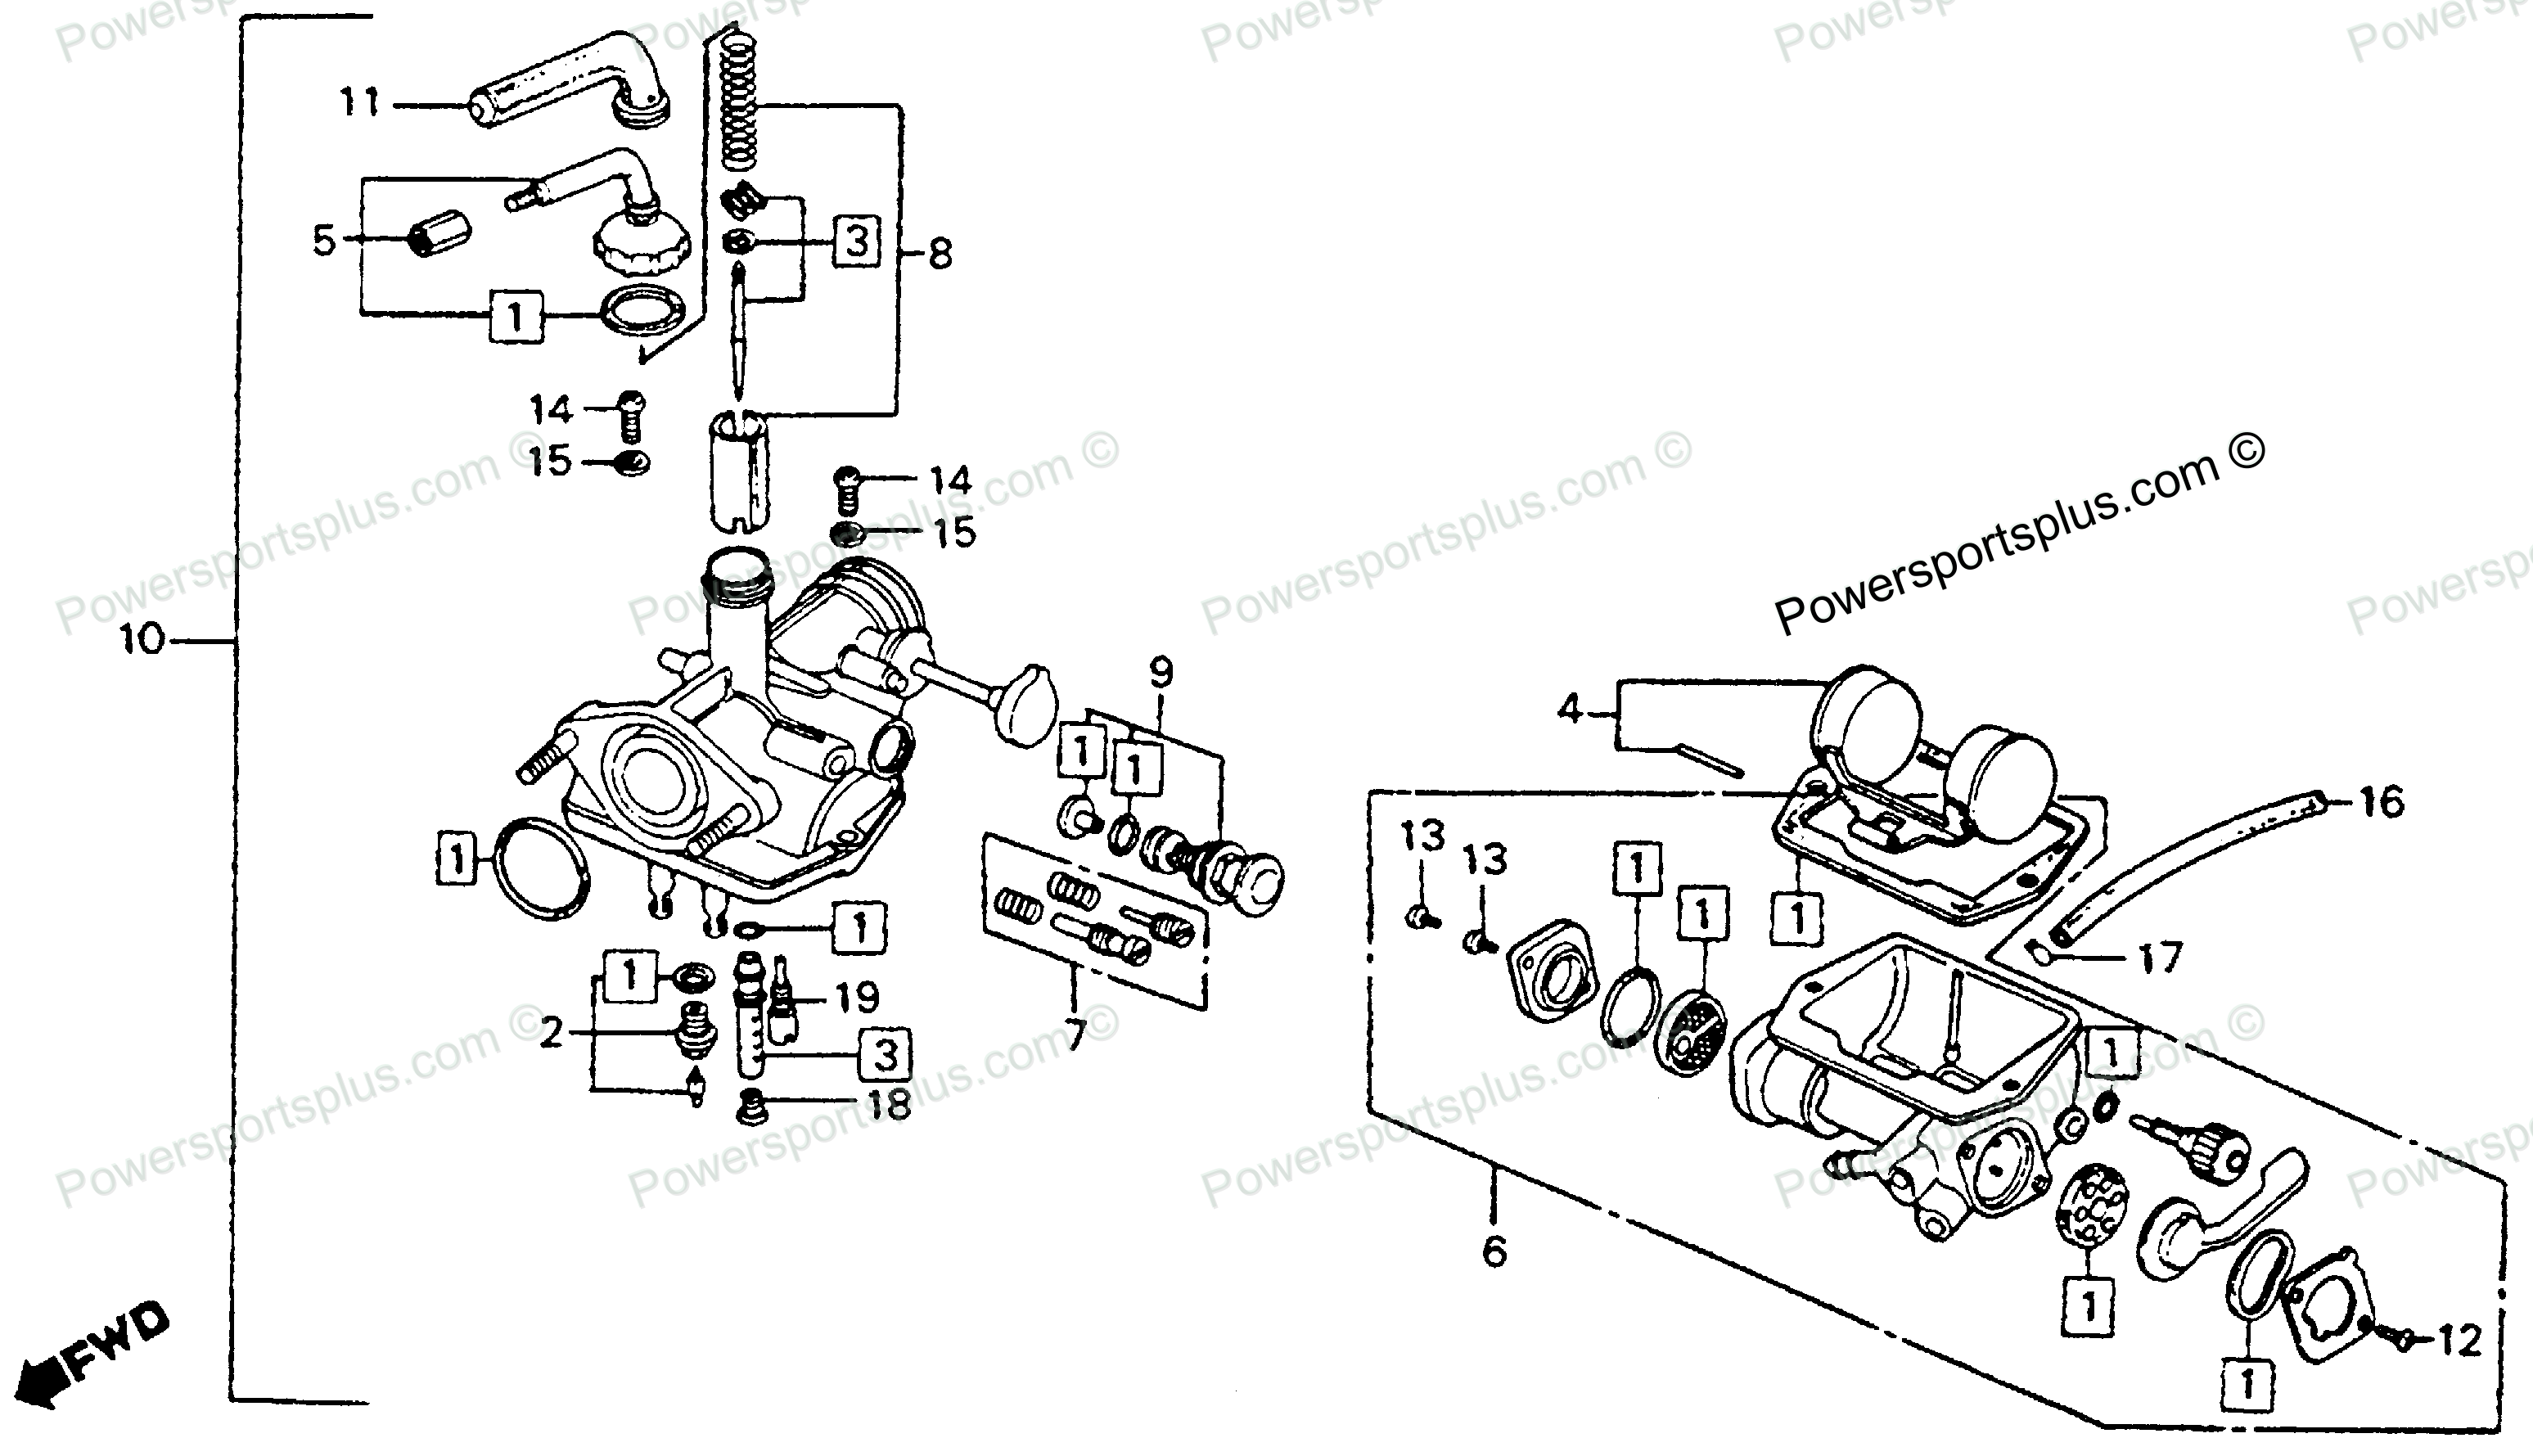 0efb18283ae24d7a2627632be070cf5c diagram of honda motorcycle parts 1976 ct90 a carburetor k6 77 honda motorcycles parts diagram at crackthecode.co